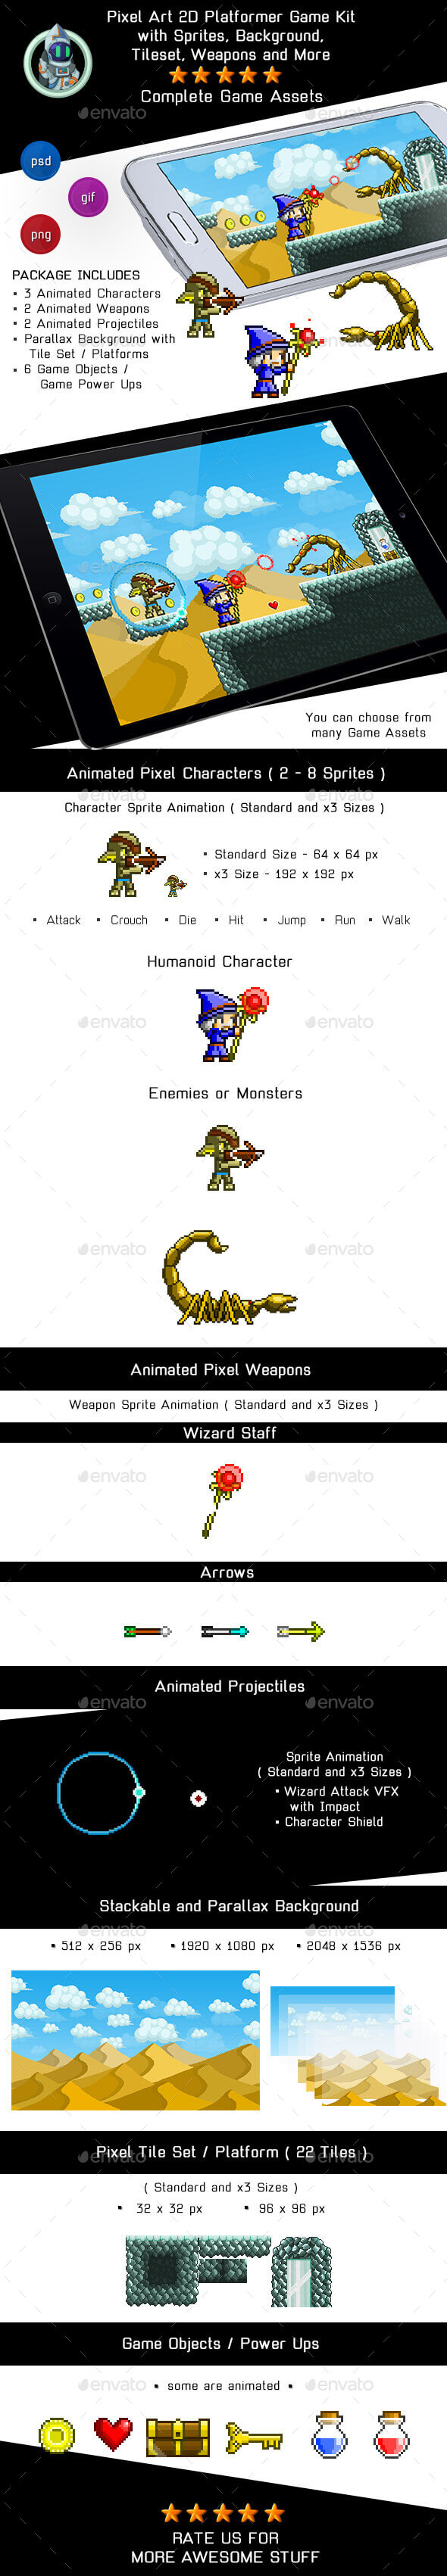 Game Assets Pixel Platformer Kit - Sprites, Background and Weapons - Game Kits Game Assets